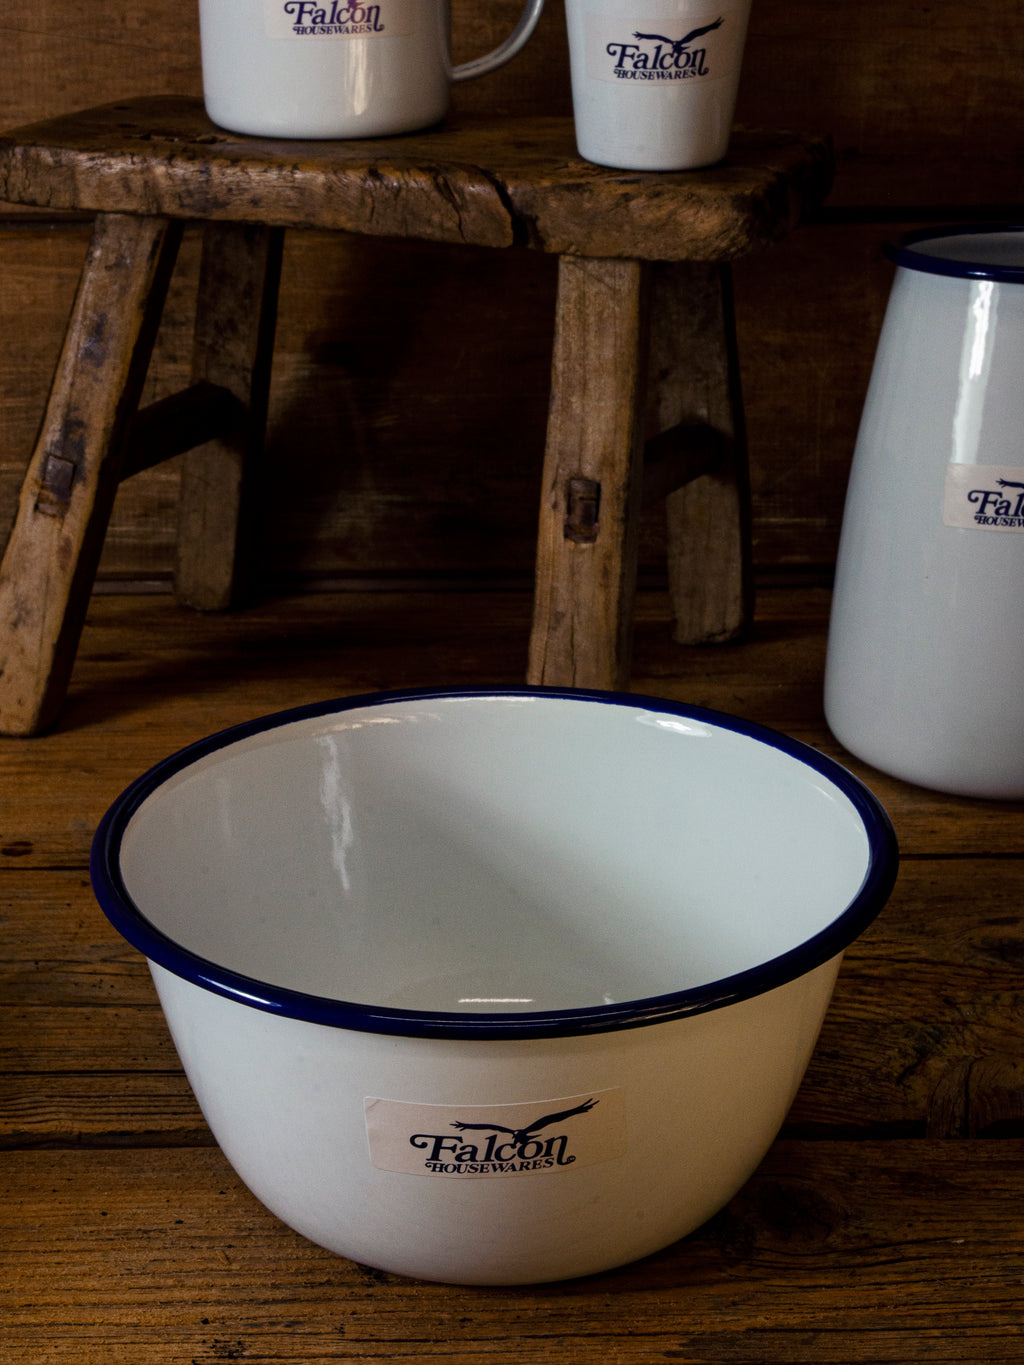 Falcon Enamel Pudding Basin 16cm White/BLue